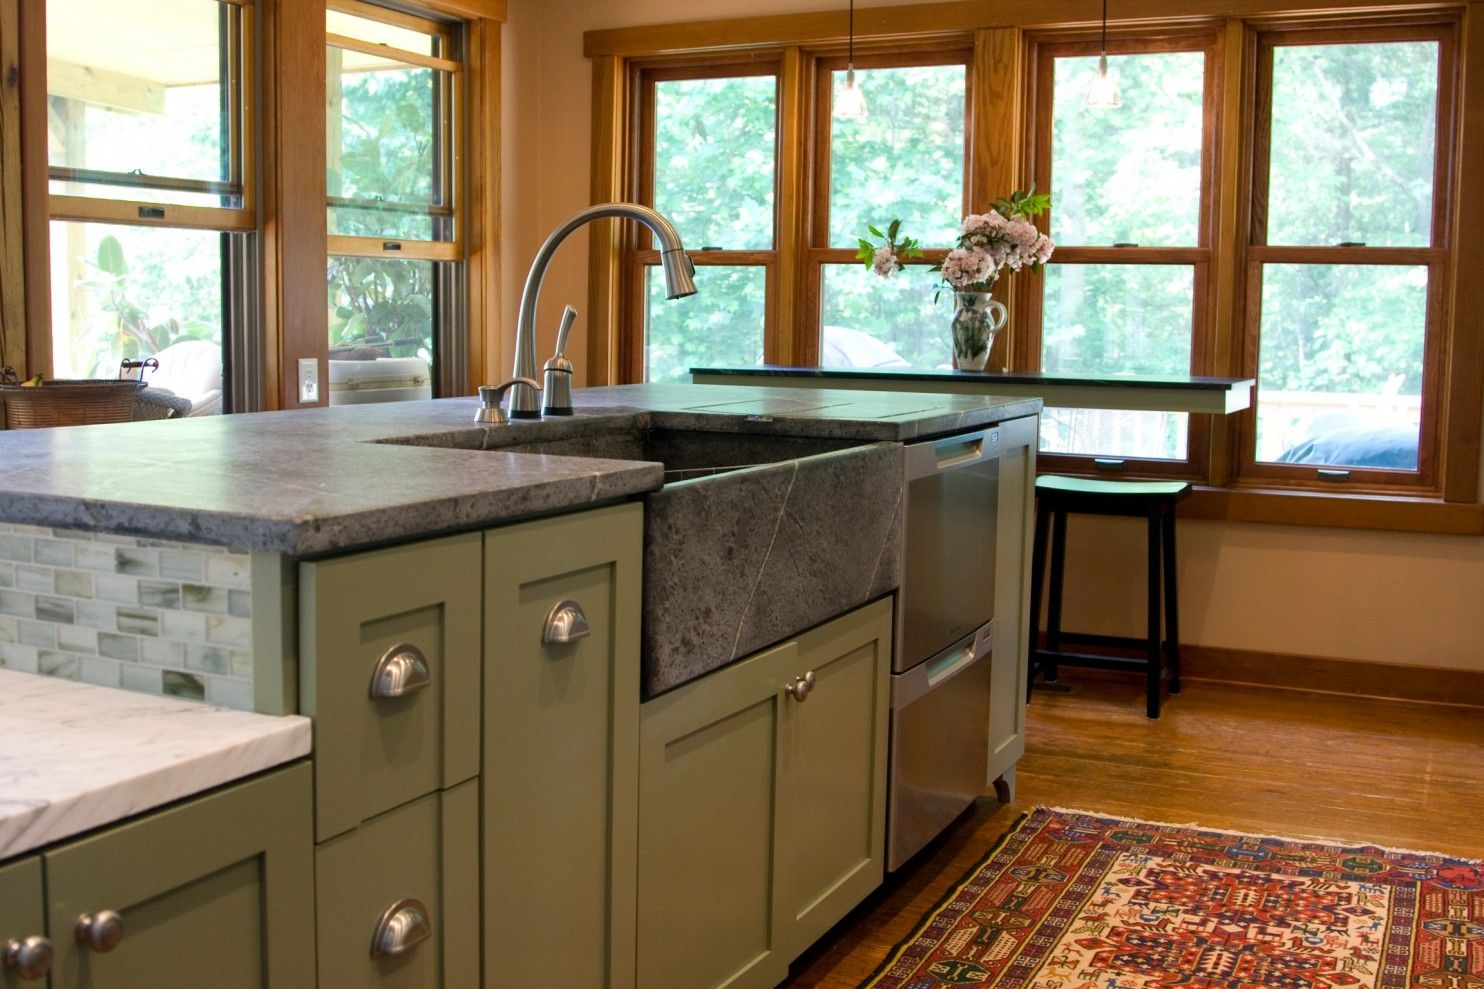 How To Clean Slate Countertops Durable Soapstone Countertops A Versatile Design Option